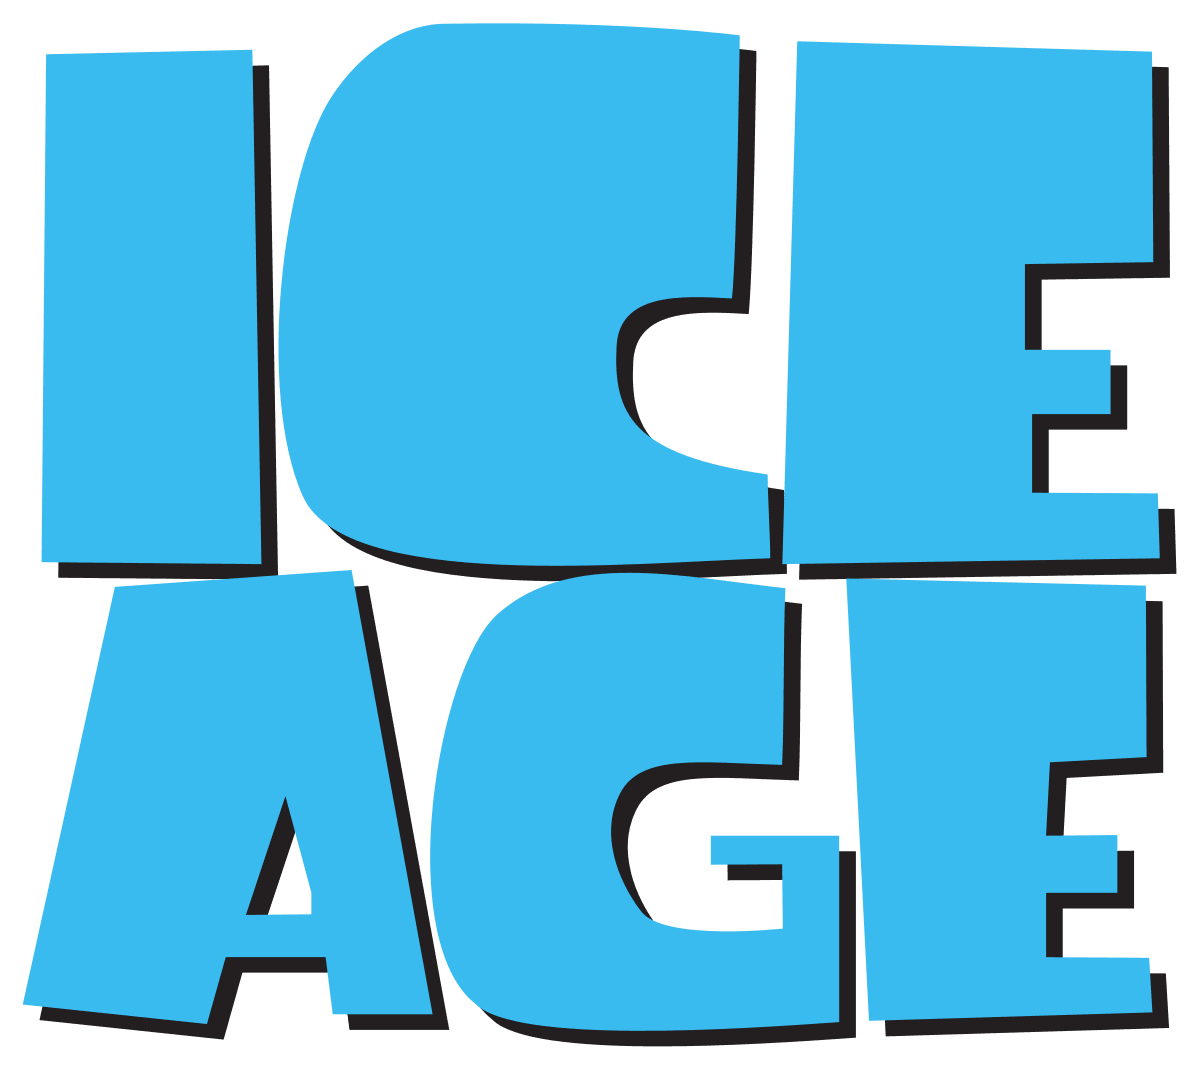 Ice age 2 the meltdown game | pc game 2005.